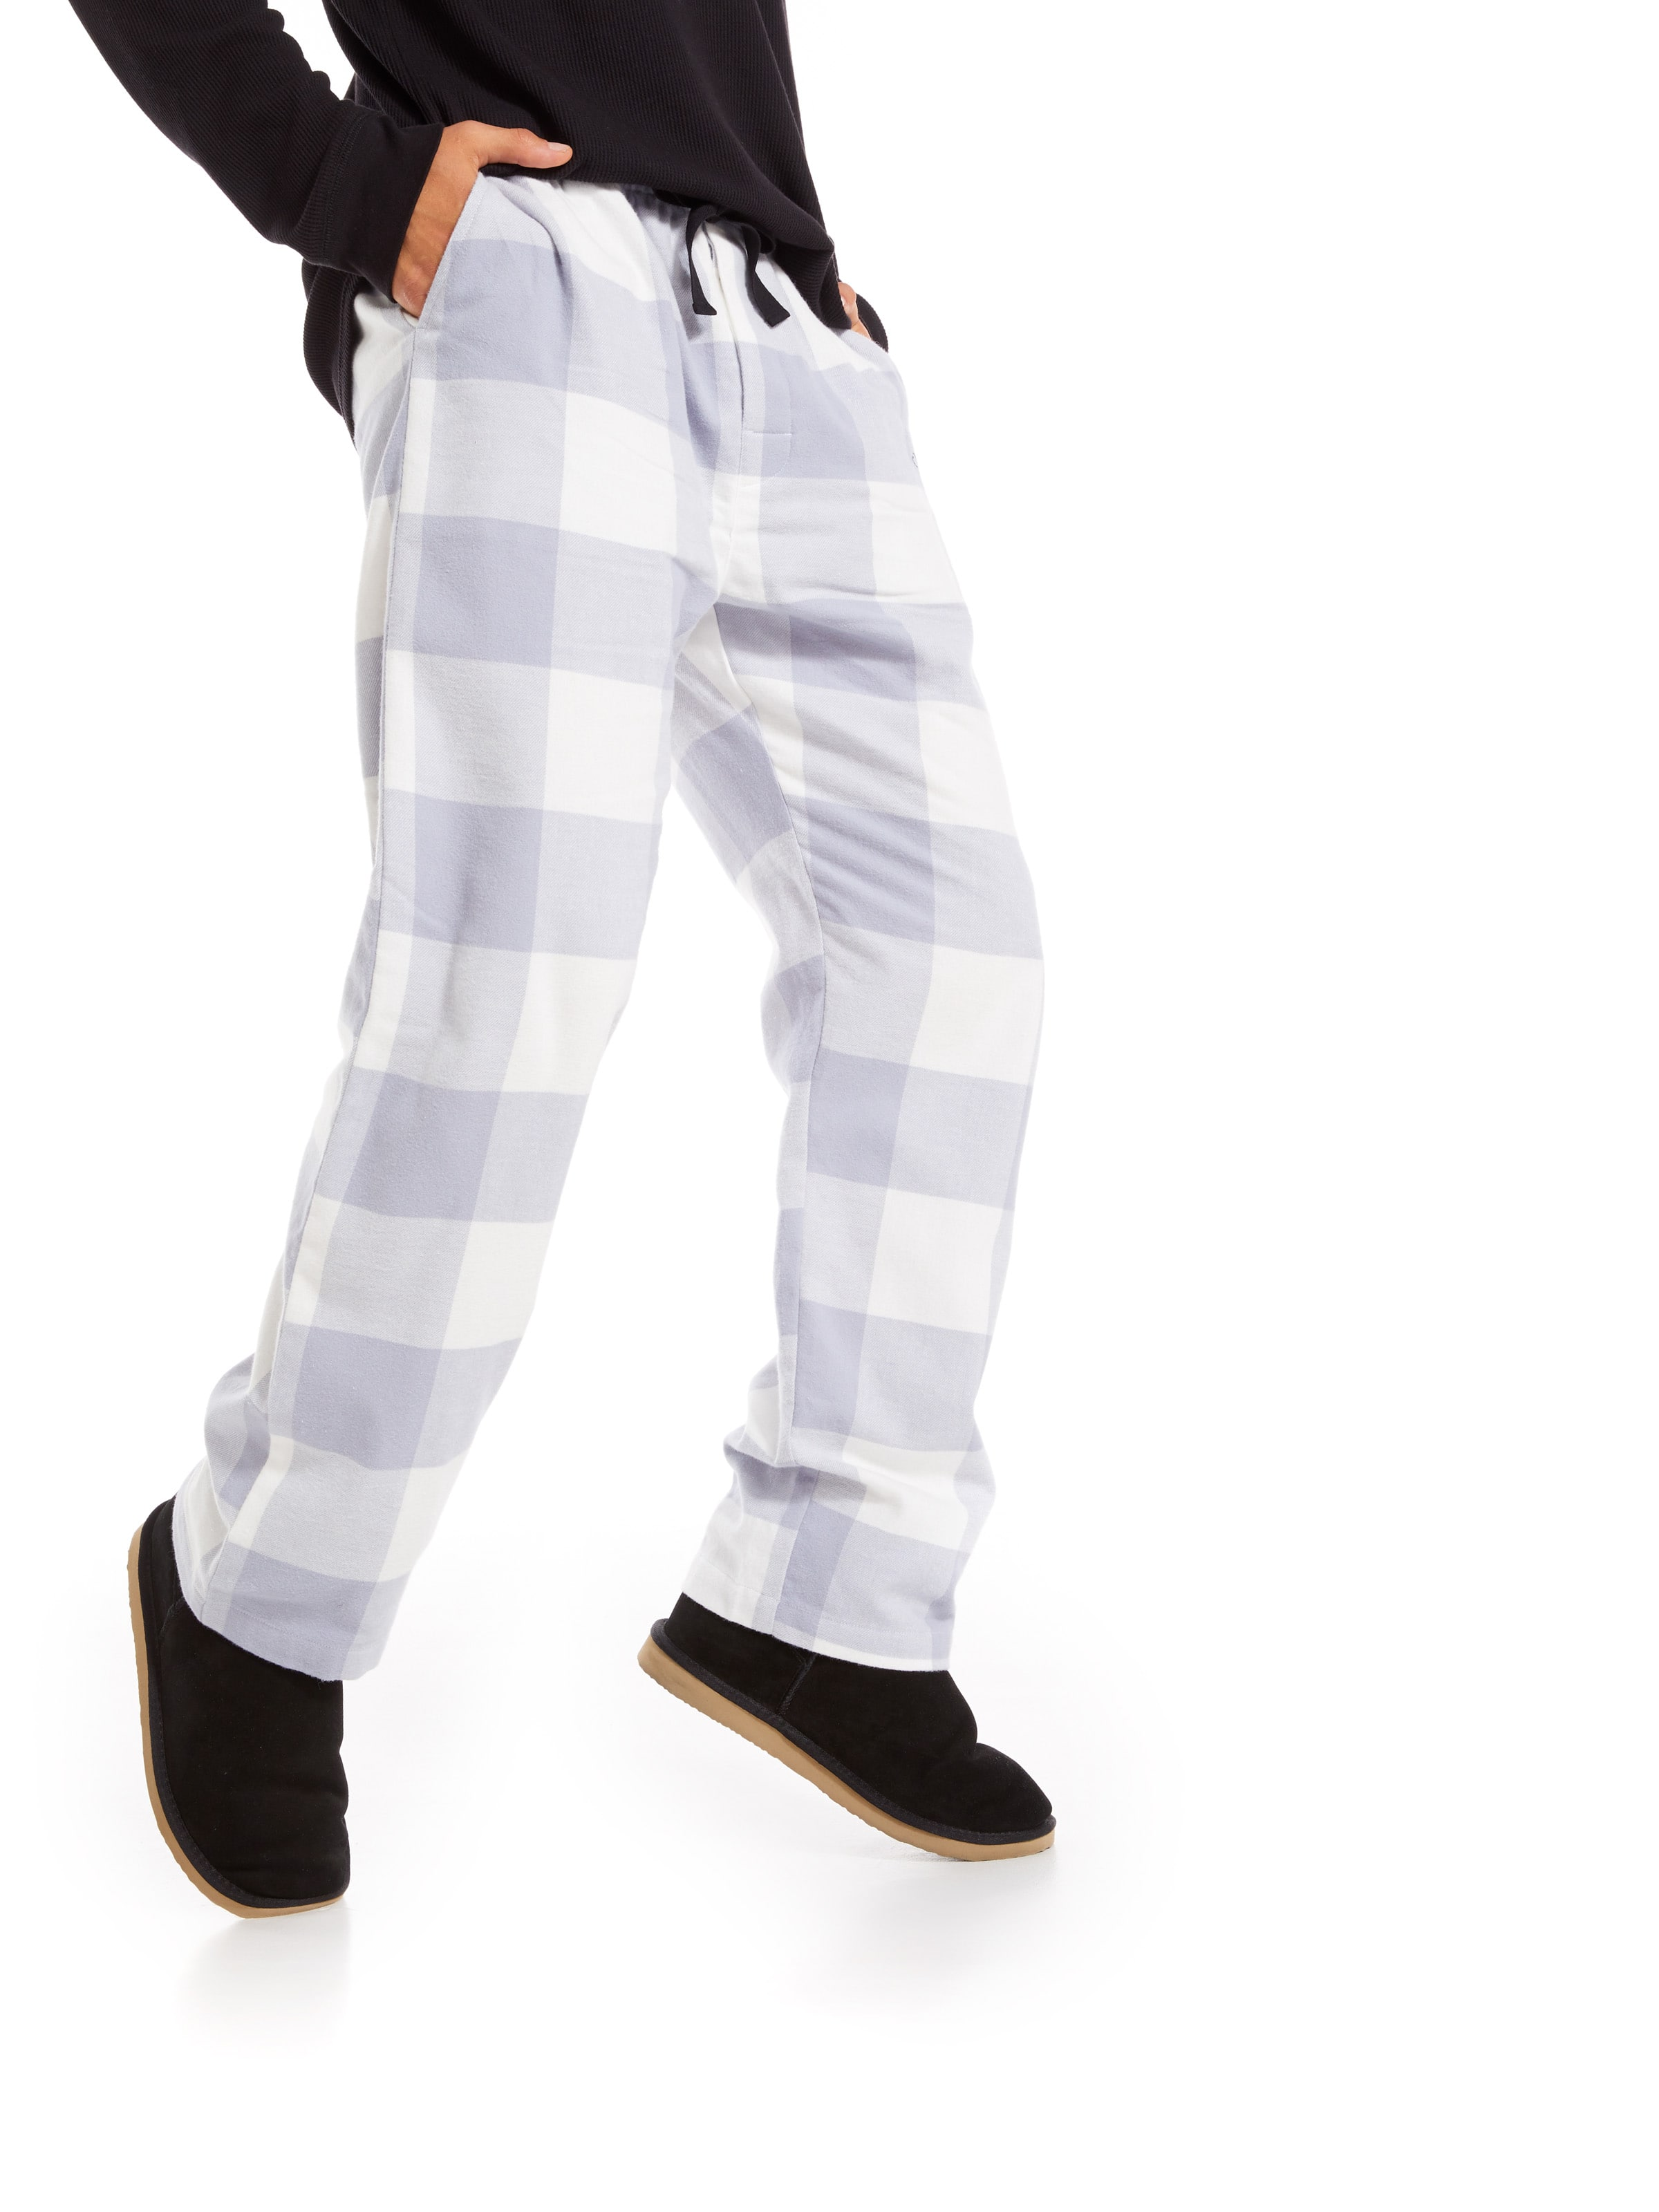 Grey Gingham Flannelette Classic Pj Pant